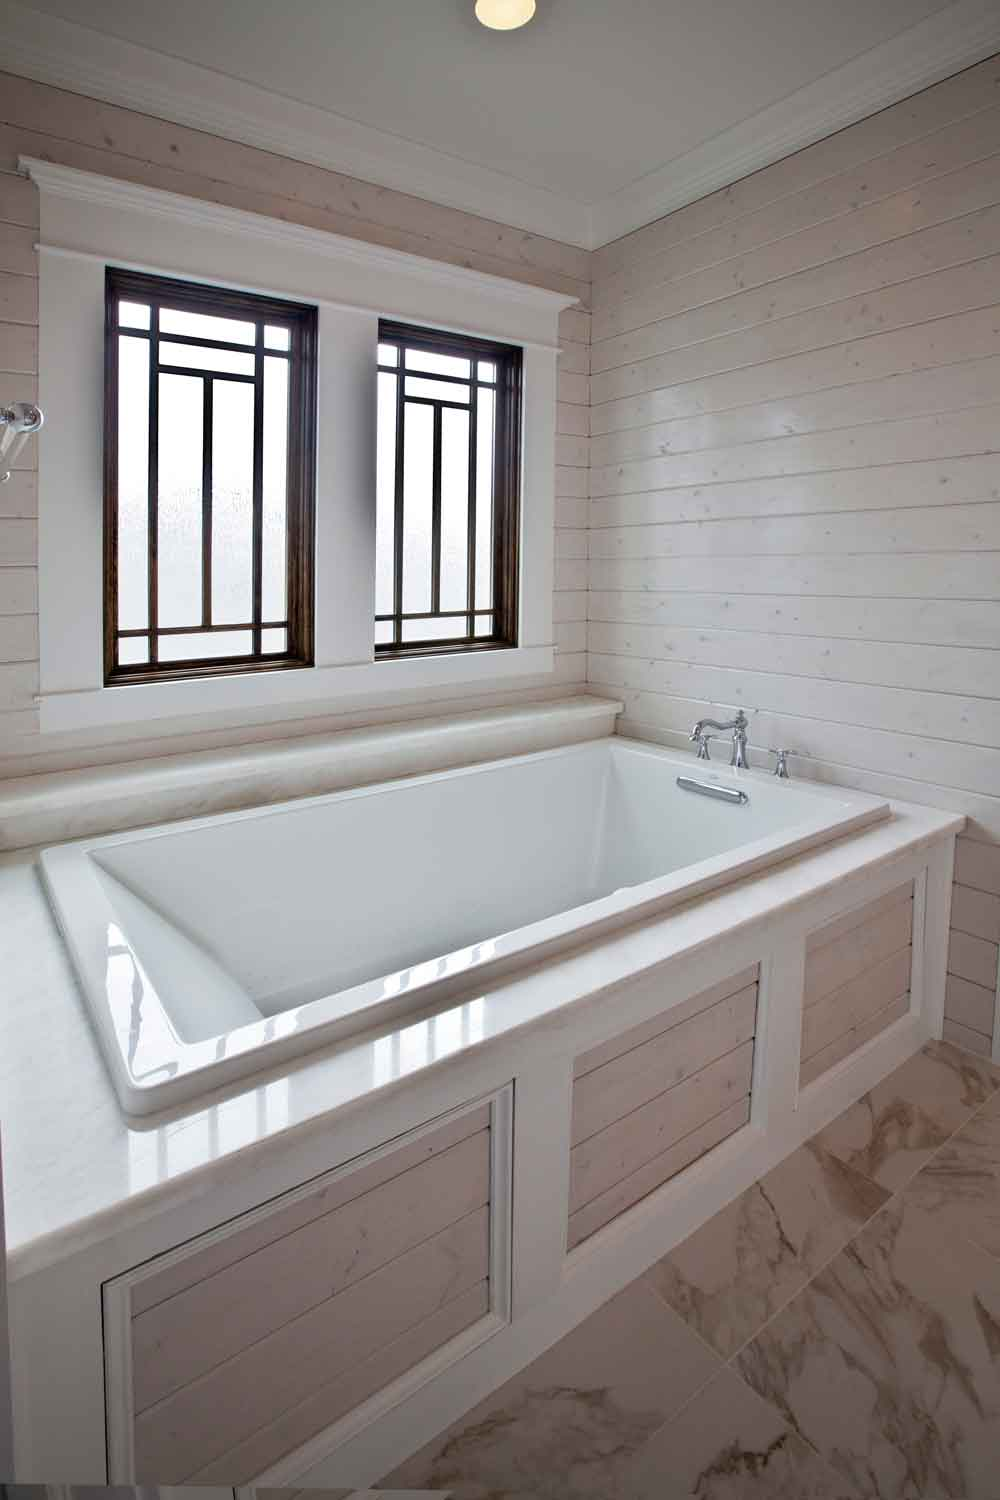 Beautiful New Bathroom Tour Cedar Hill Farmhouse Interiors Inside Ideas Interiors design about Everything [magnanprojects.com]